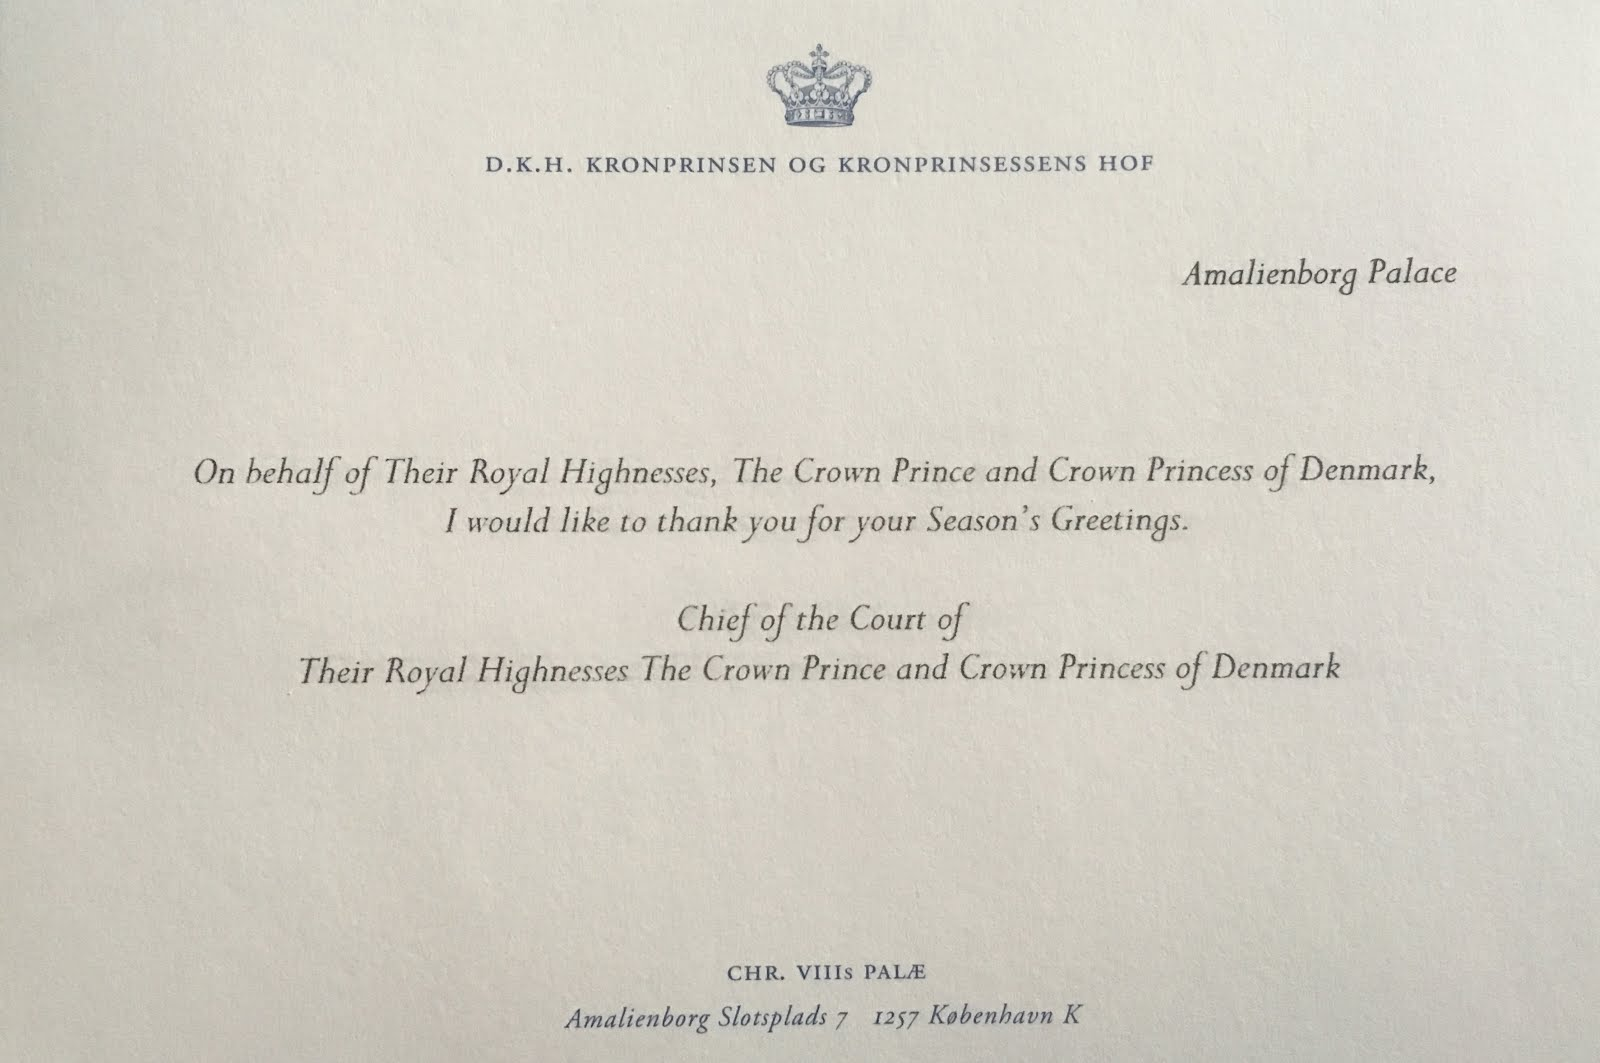 Gerts royals crown prince frederik and crown princess mary the only real way to tell the difference between this reply and last years christmas reply is the date on the postmark and the spacing of the message kristyandbryce Gallery